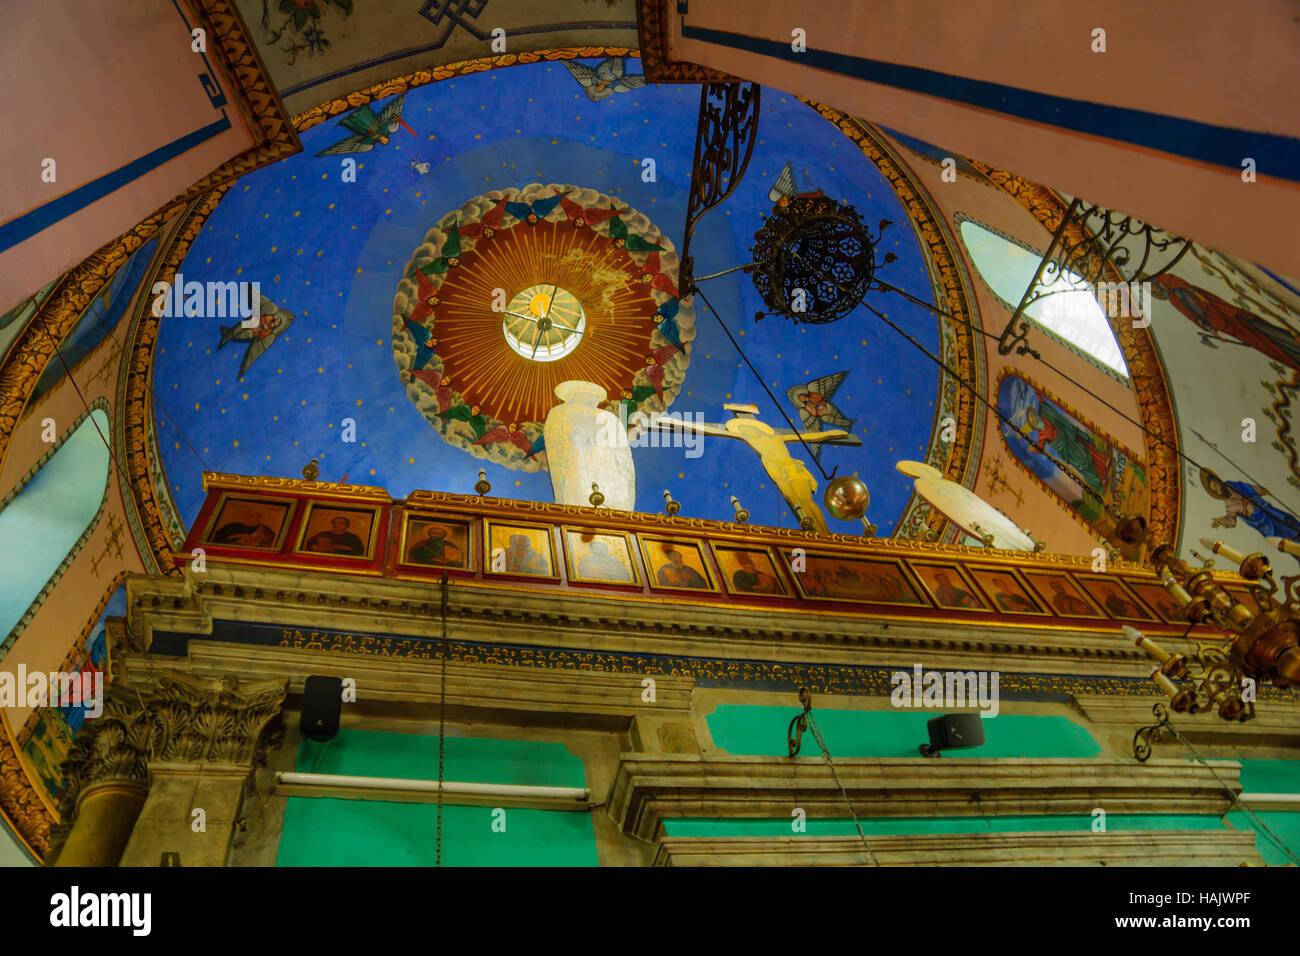 JERUSALEM, ISRAEL - SEPTEMBER 23, 2016: The dome of the Ethiopian Orthodox Tewahedo Church, in Jerusalem, Israel - Stock Image